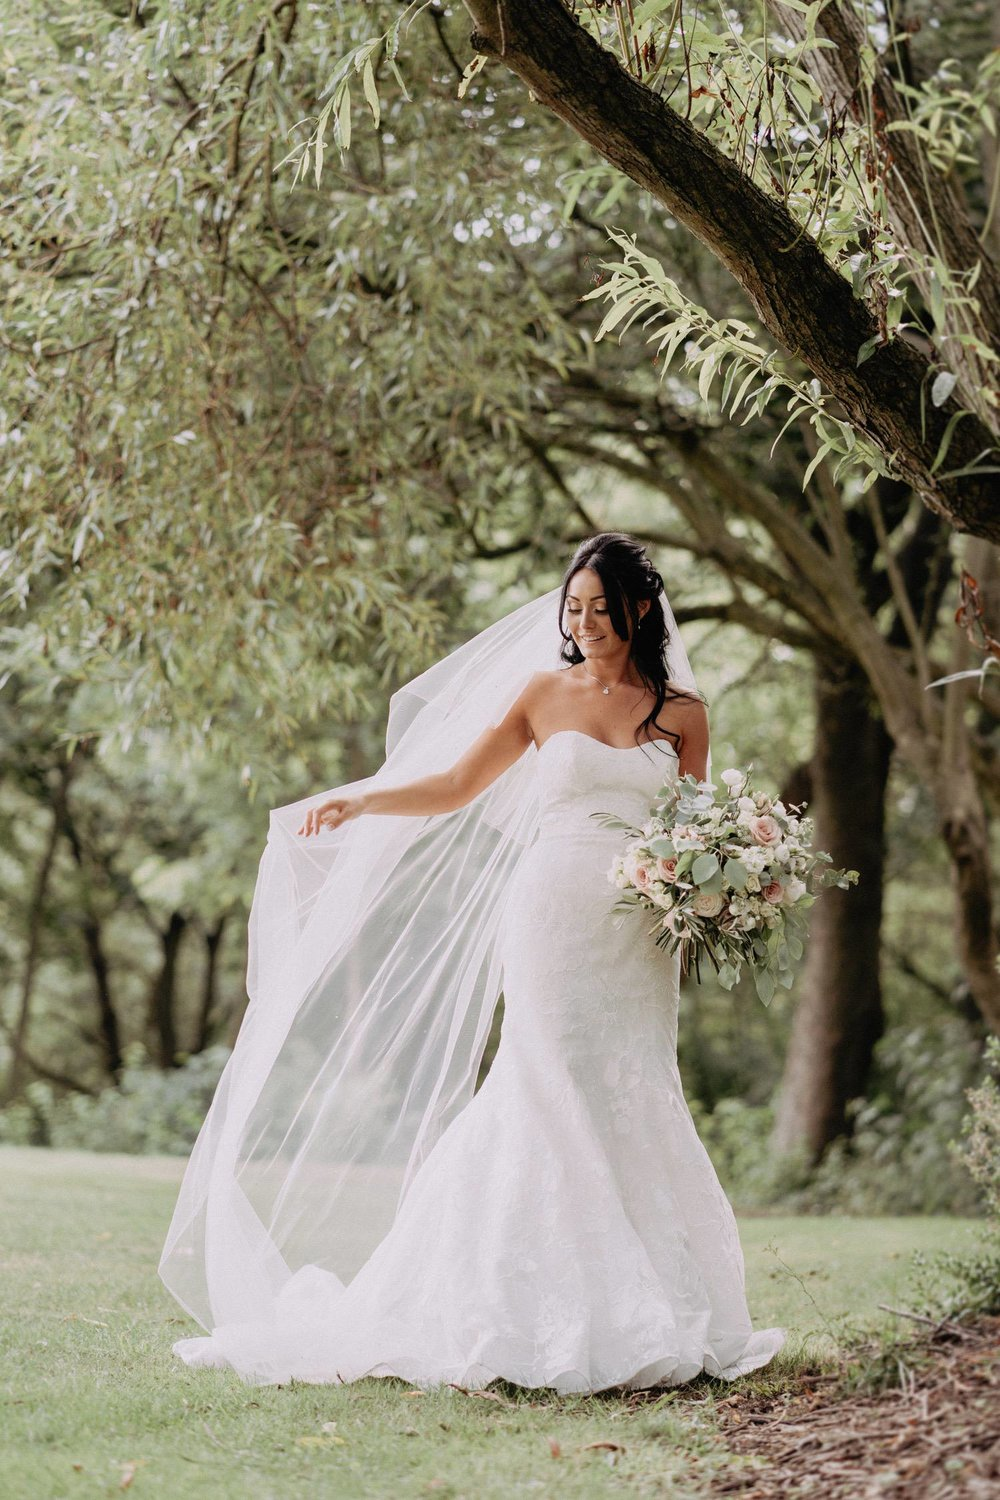 Wedding-Photographer-County-Durham.jpg